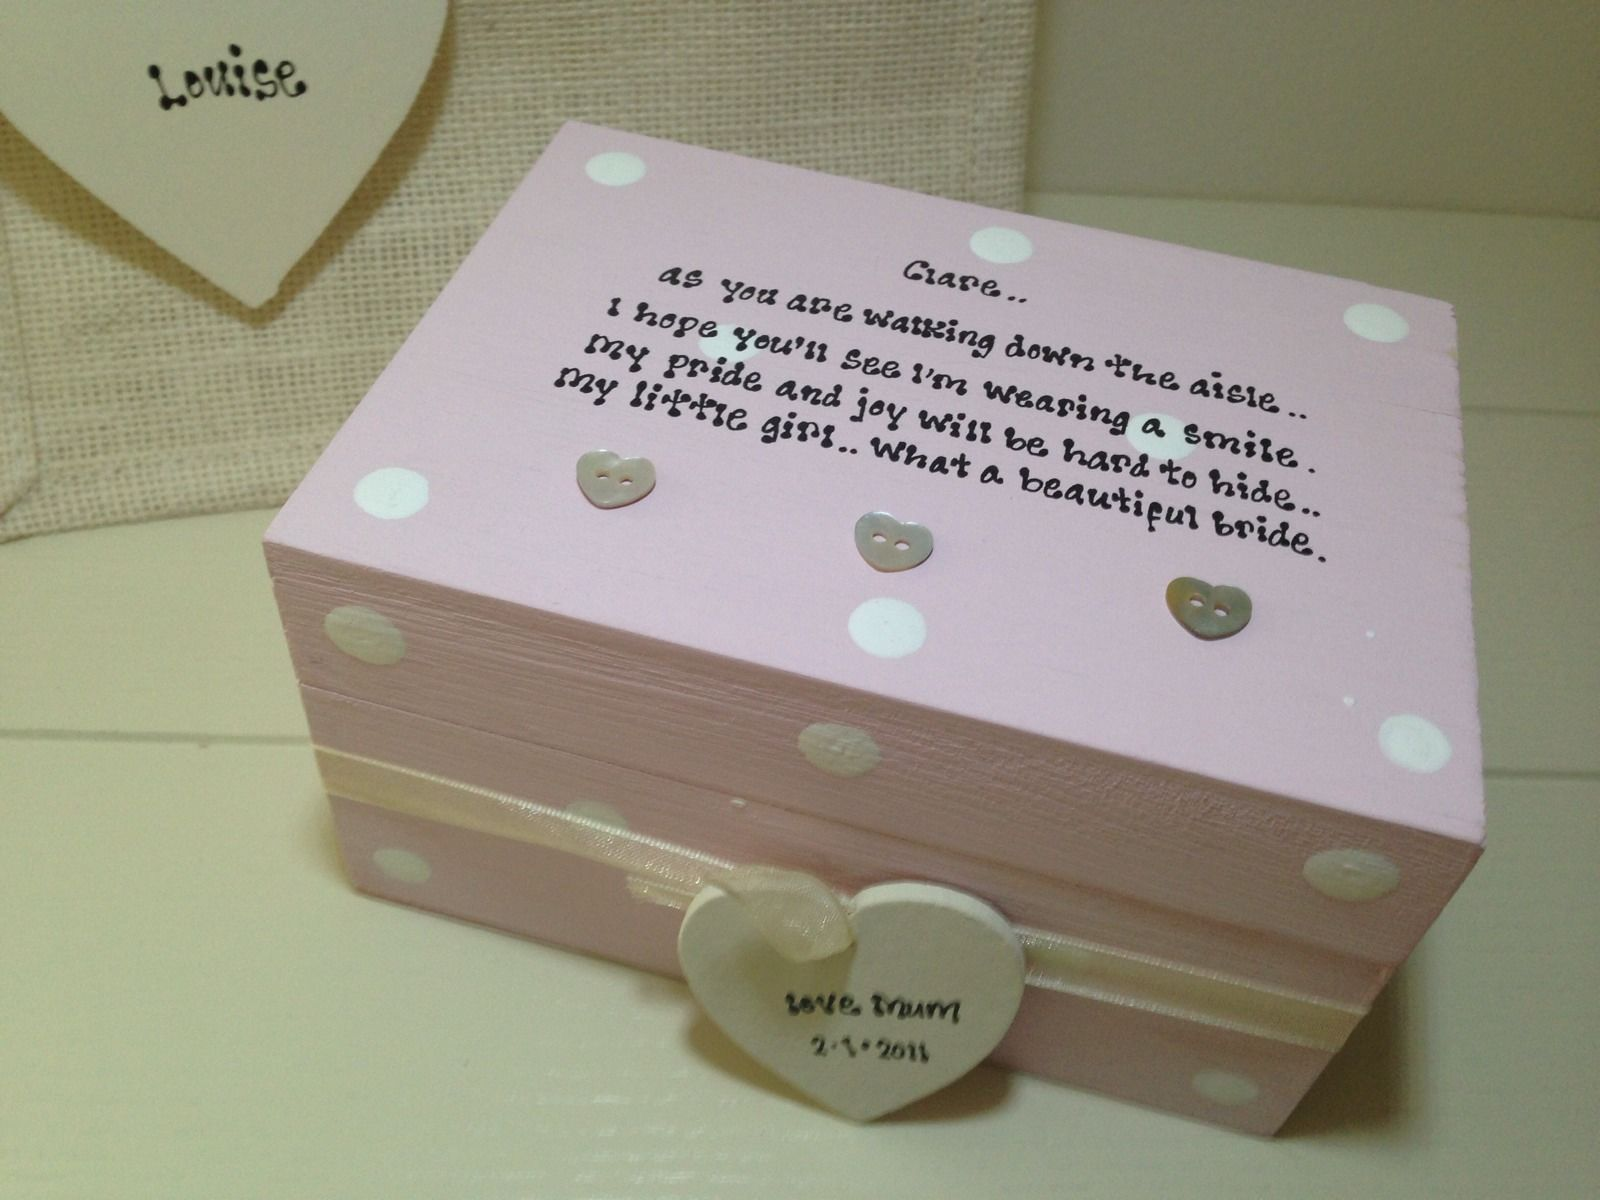 Unique Wedding Gifts For Son And Daughter In Law : Ideas Gifts From Mother To Daughter On Wedding Day shabby personalised ...